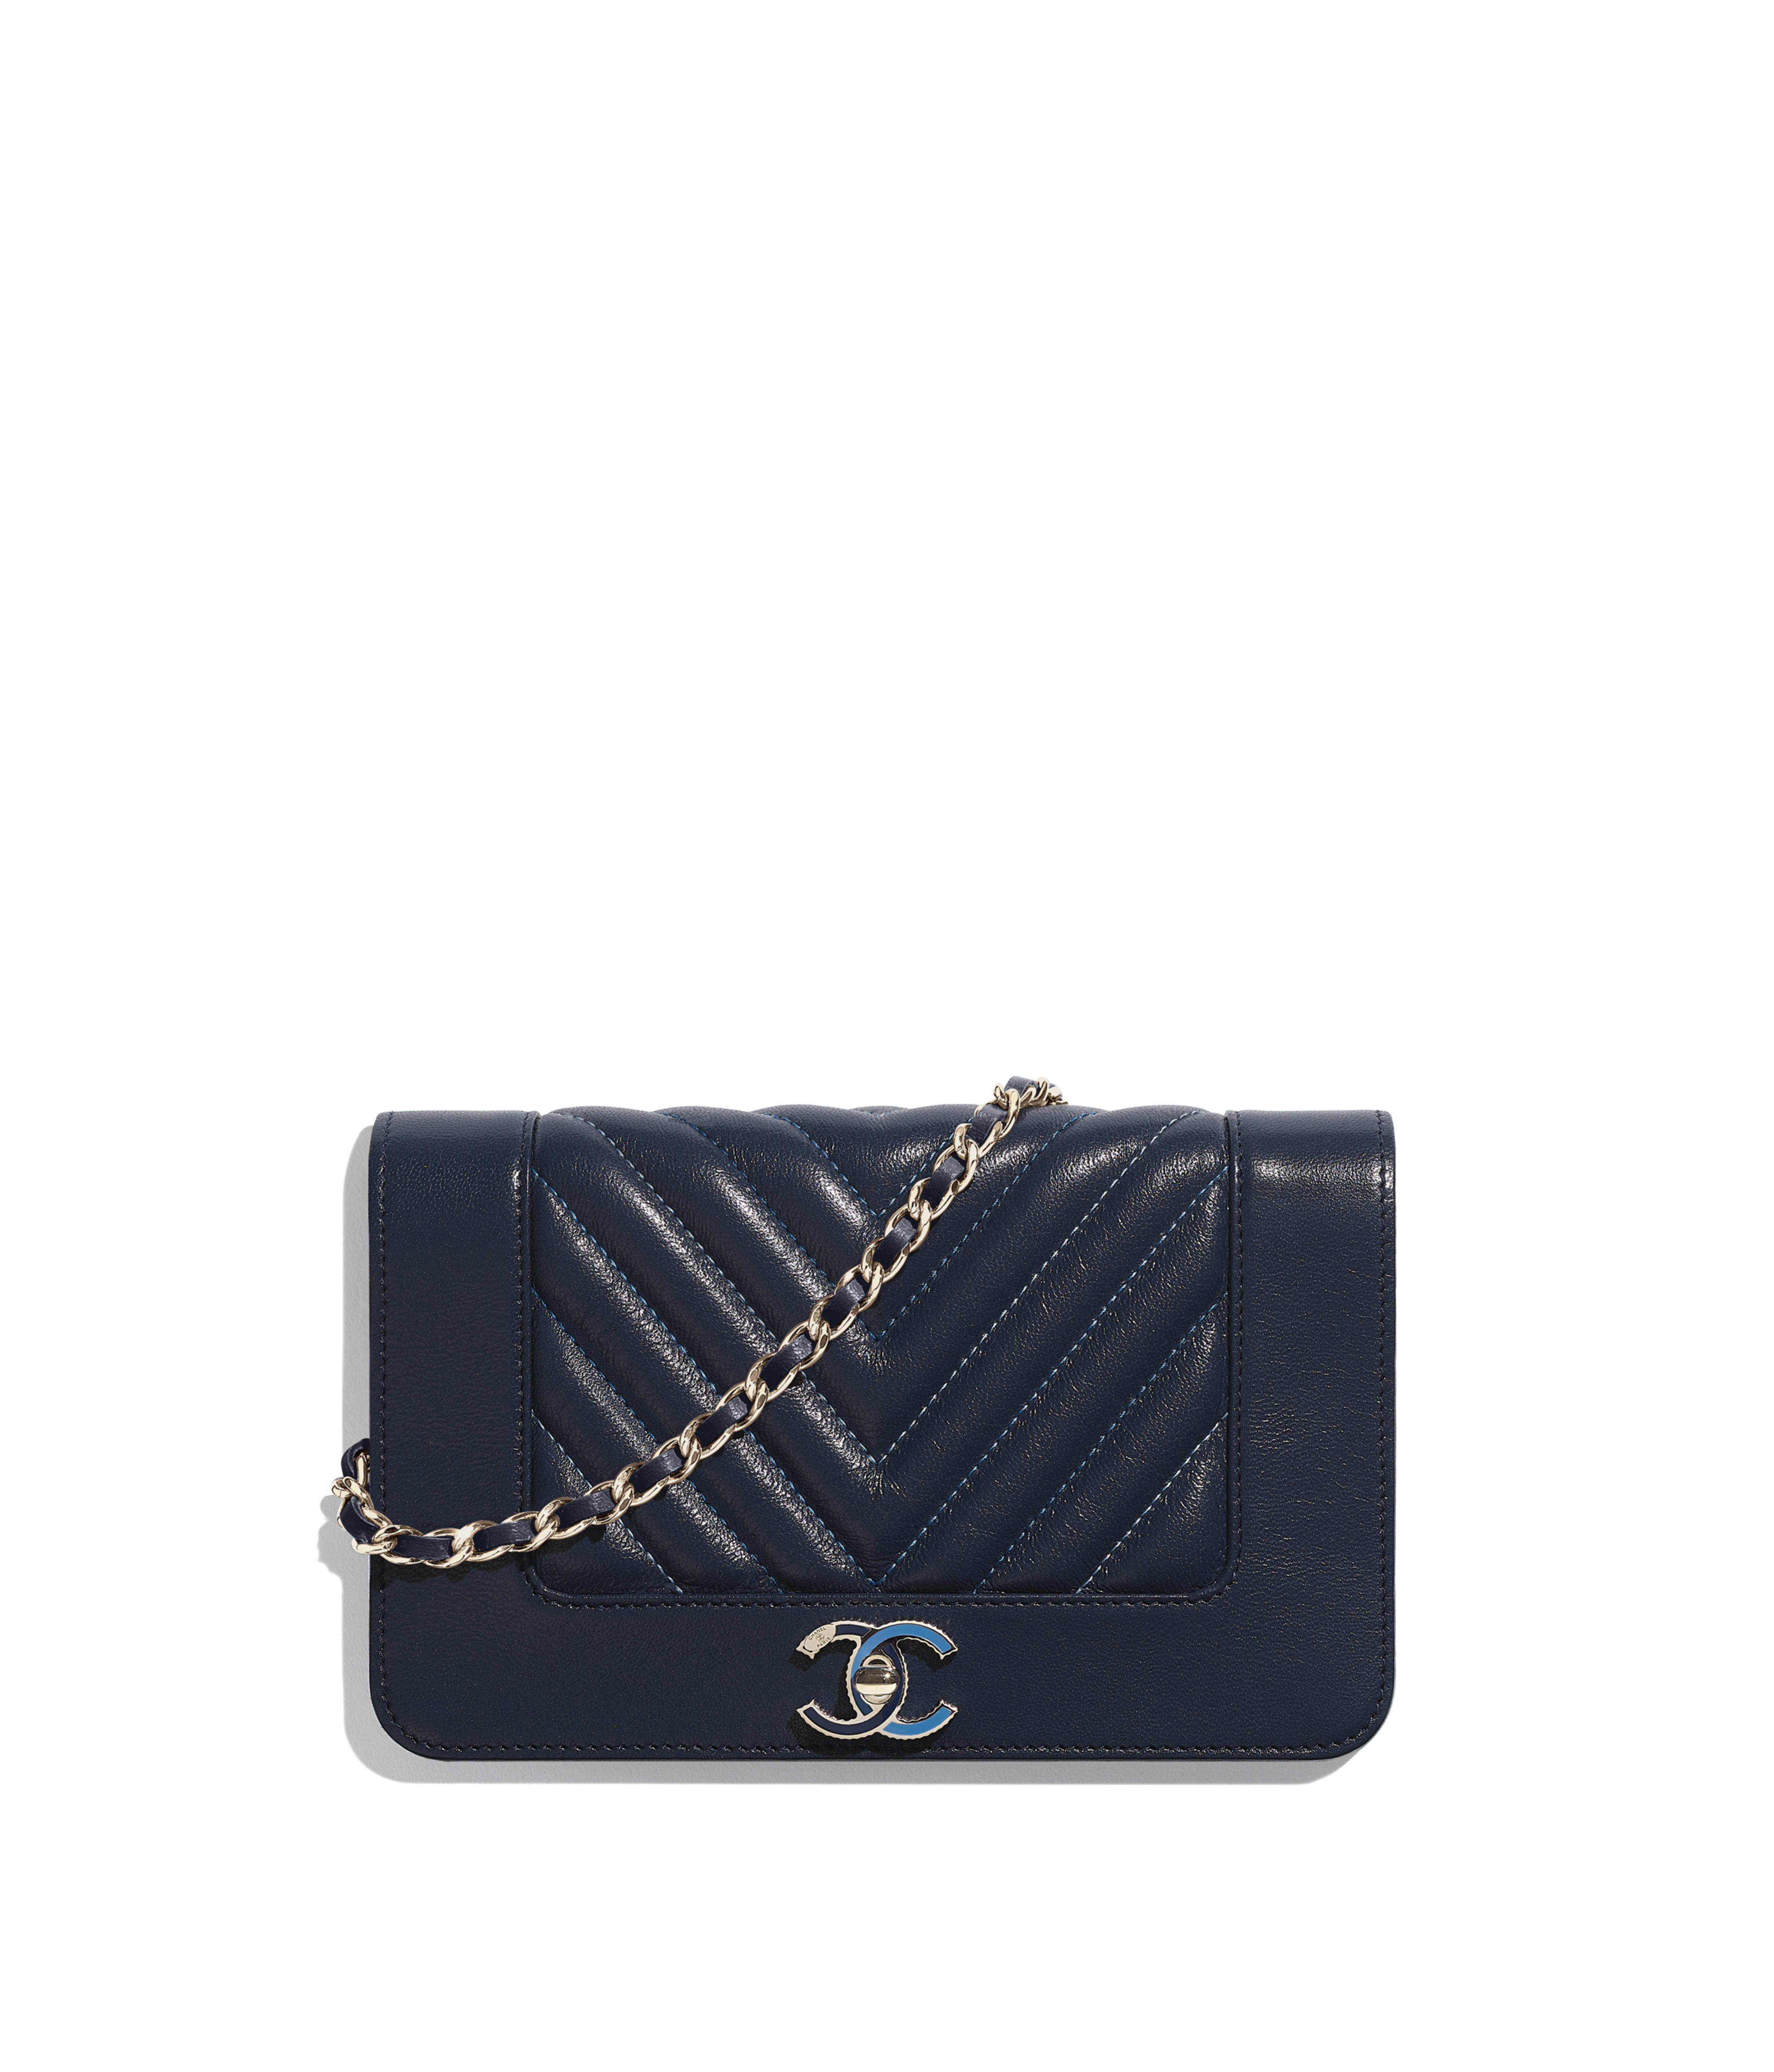 e2135b72c797 Wallet on Chain Sheepskin & Gold-Tone Metal, Navy Blue Ref.  A80972B00074N0417